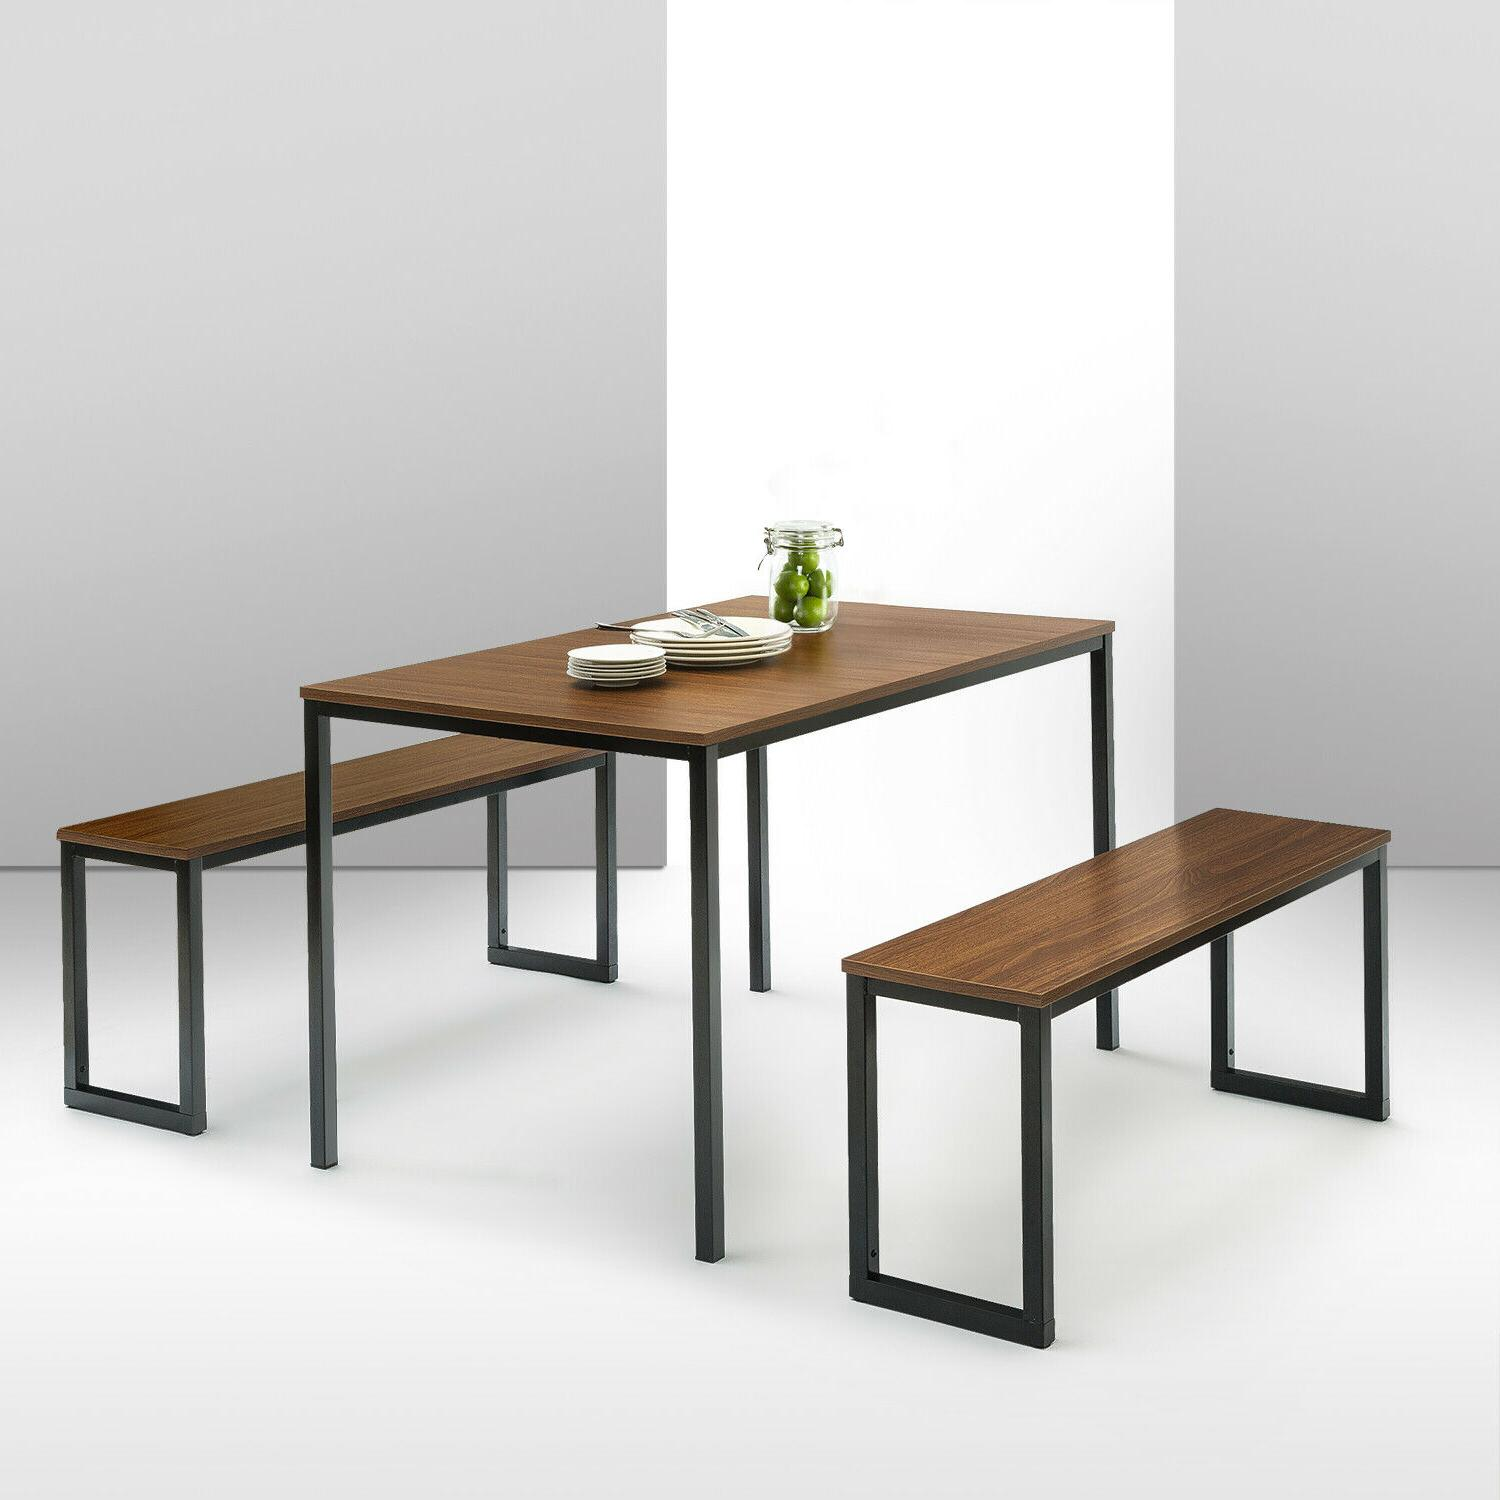 Modern Dining Table with Two Benches